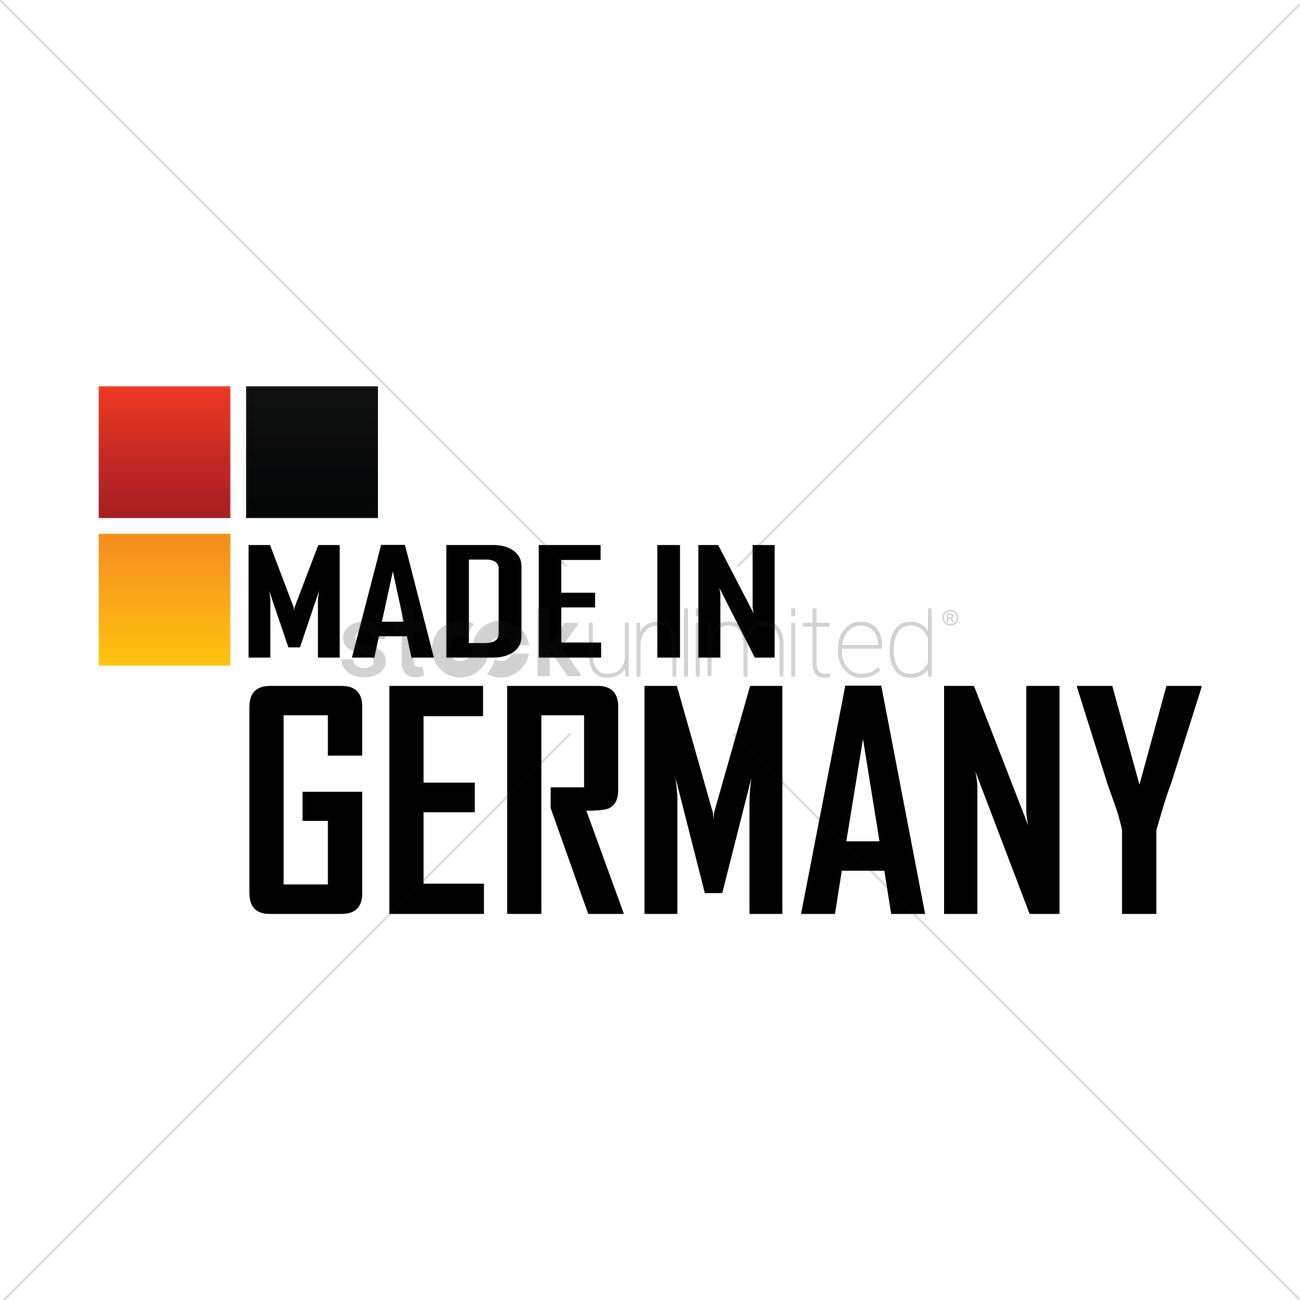 Made In Germany Label Design Vector Image 1976810 Stockunlimited